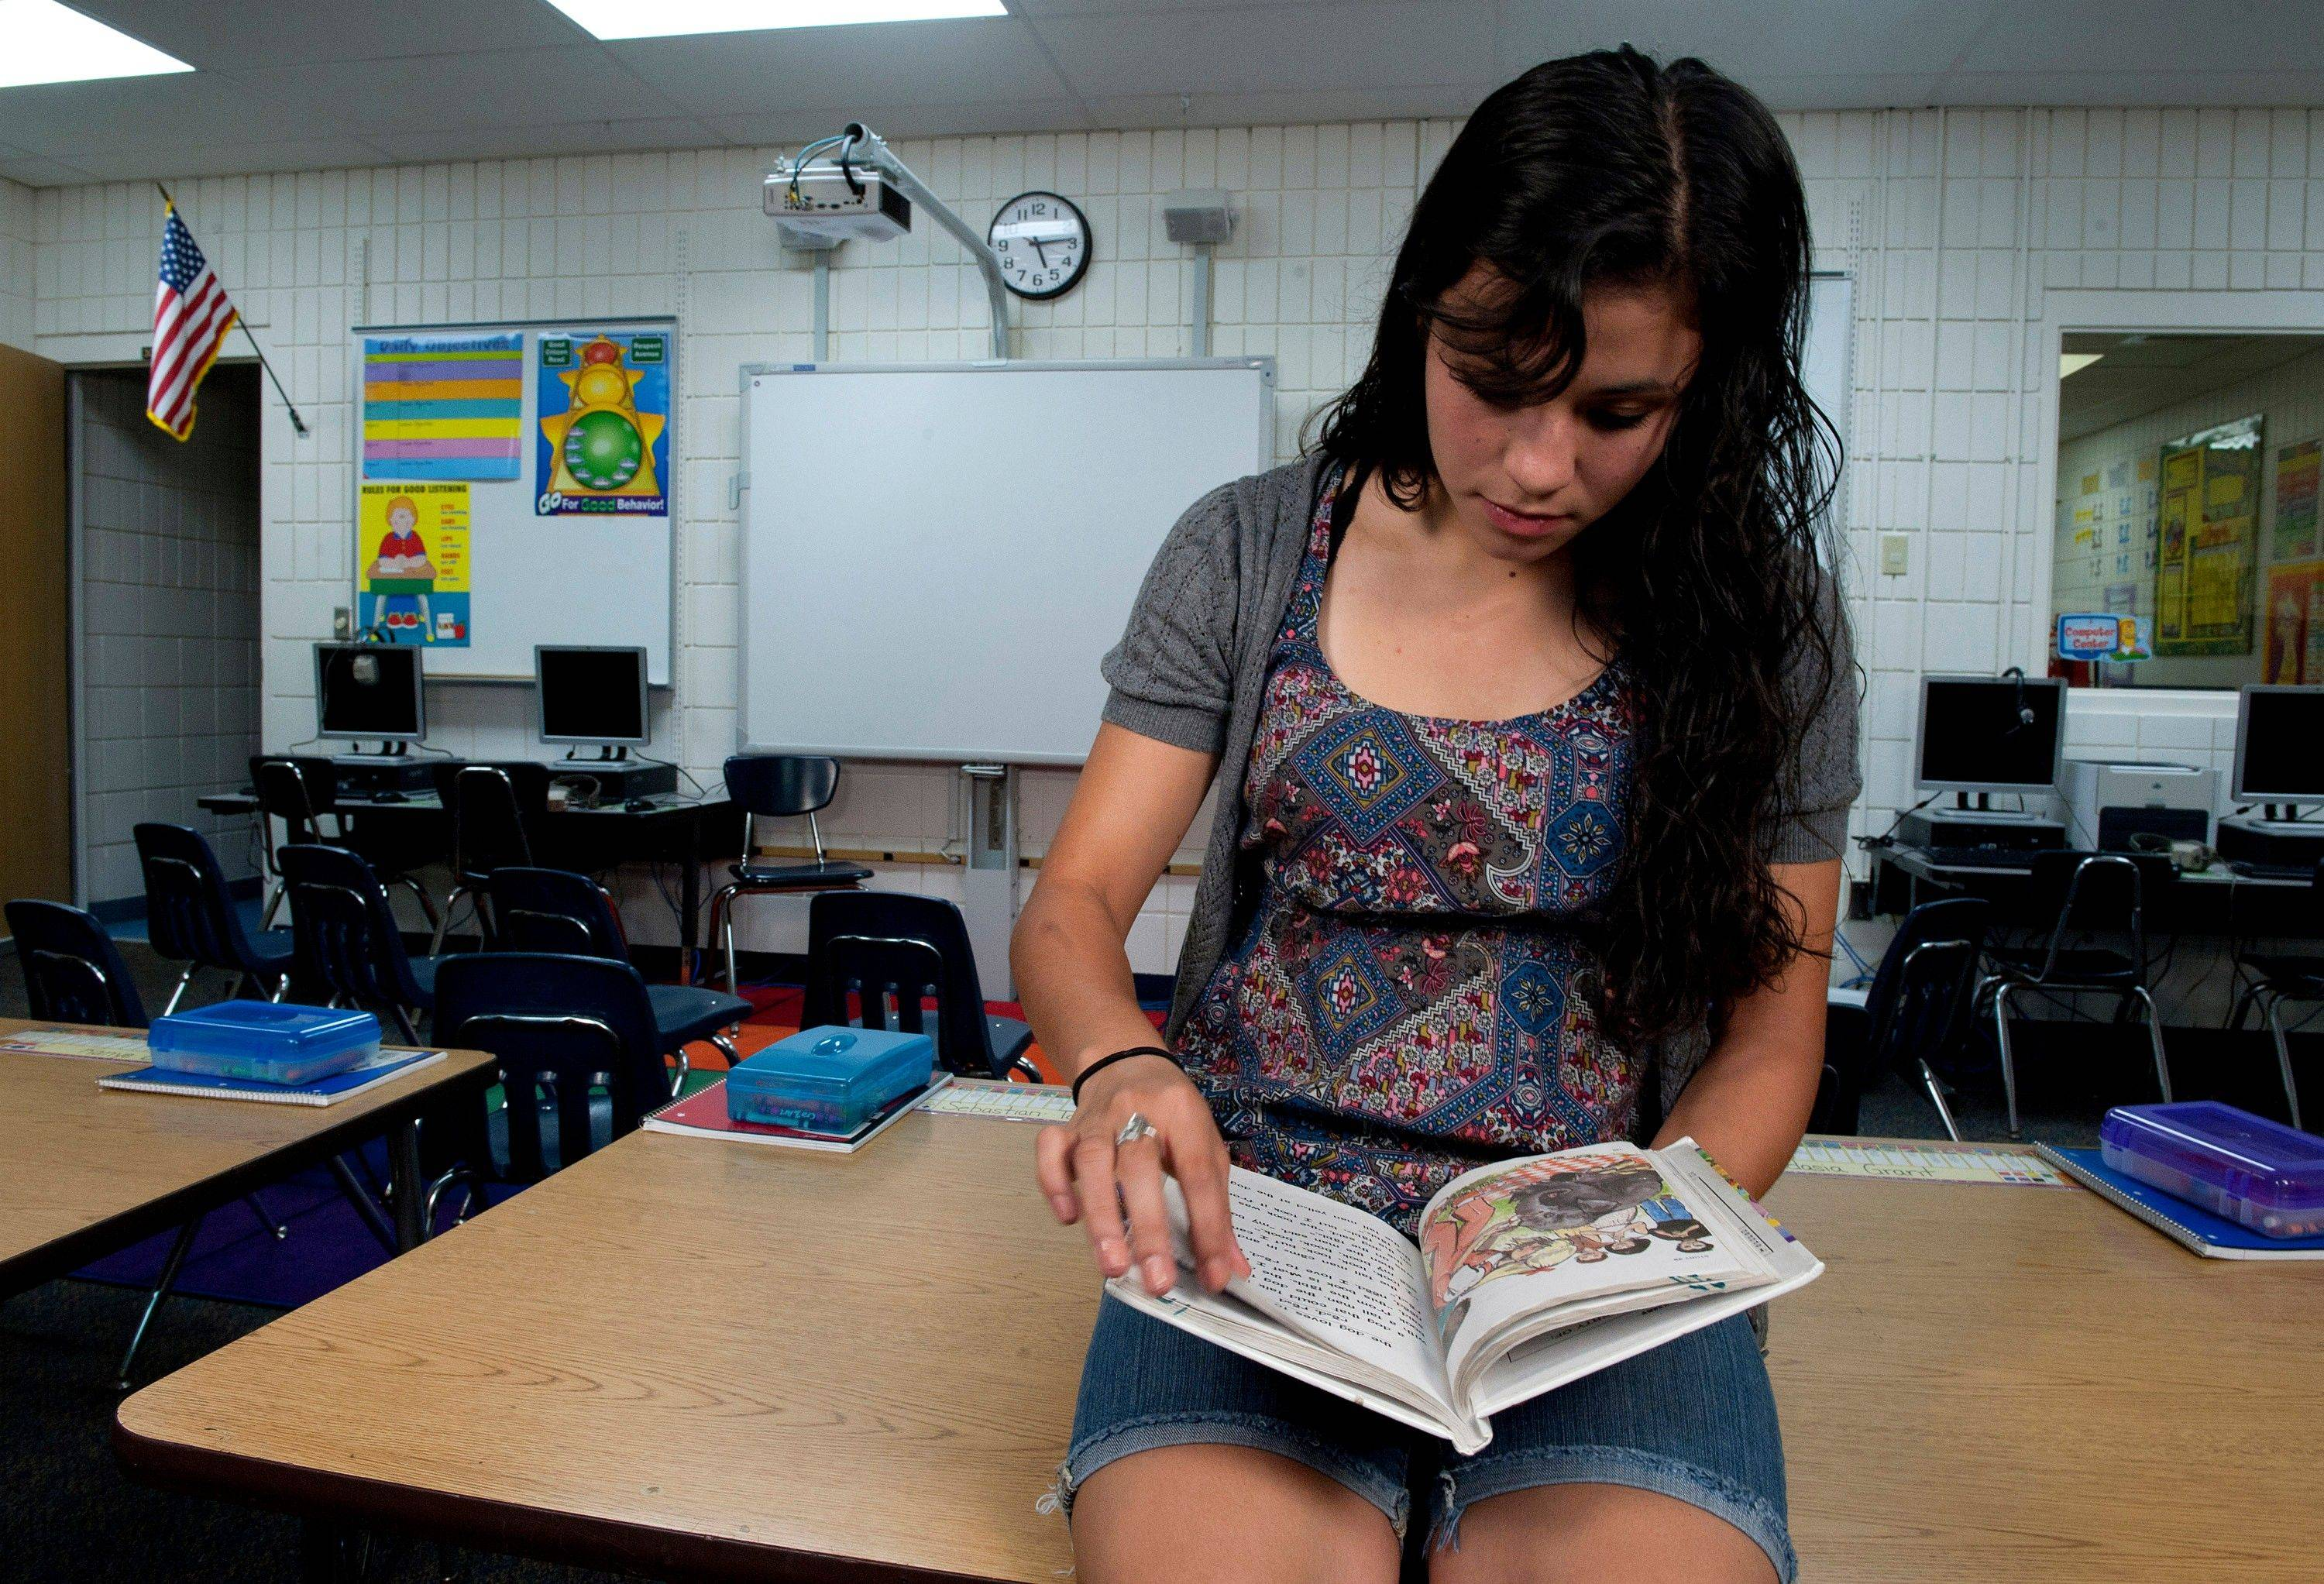 Chantal Guerrero, 17, sits in the same classroom at Emma E. Booker Elementary school where she sat on the morning of Sept. 11, 2001, with President George W. Bush. The President was listening to Guerrero and her second-grade classmates read aloud, from the same book Guerrero is thumbing though, when then White House Chief of Staff Andrew Card whispered into Bush's ear that a second plane had hit the World Trade Center in New York City.